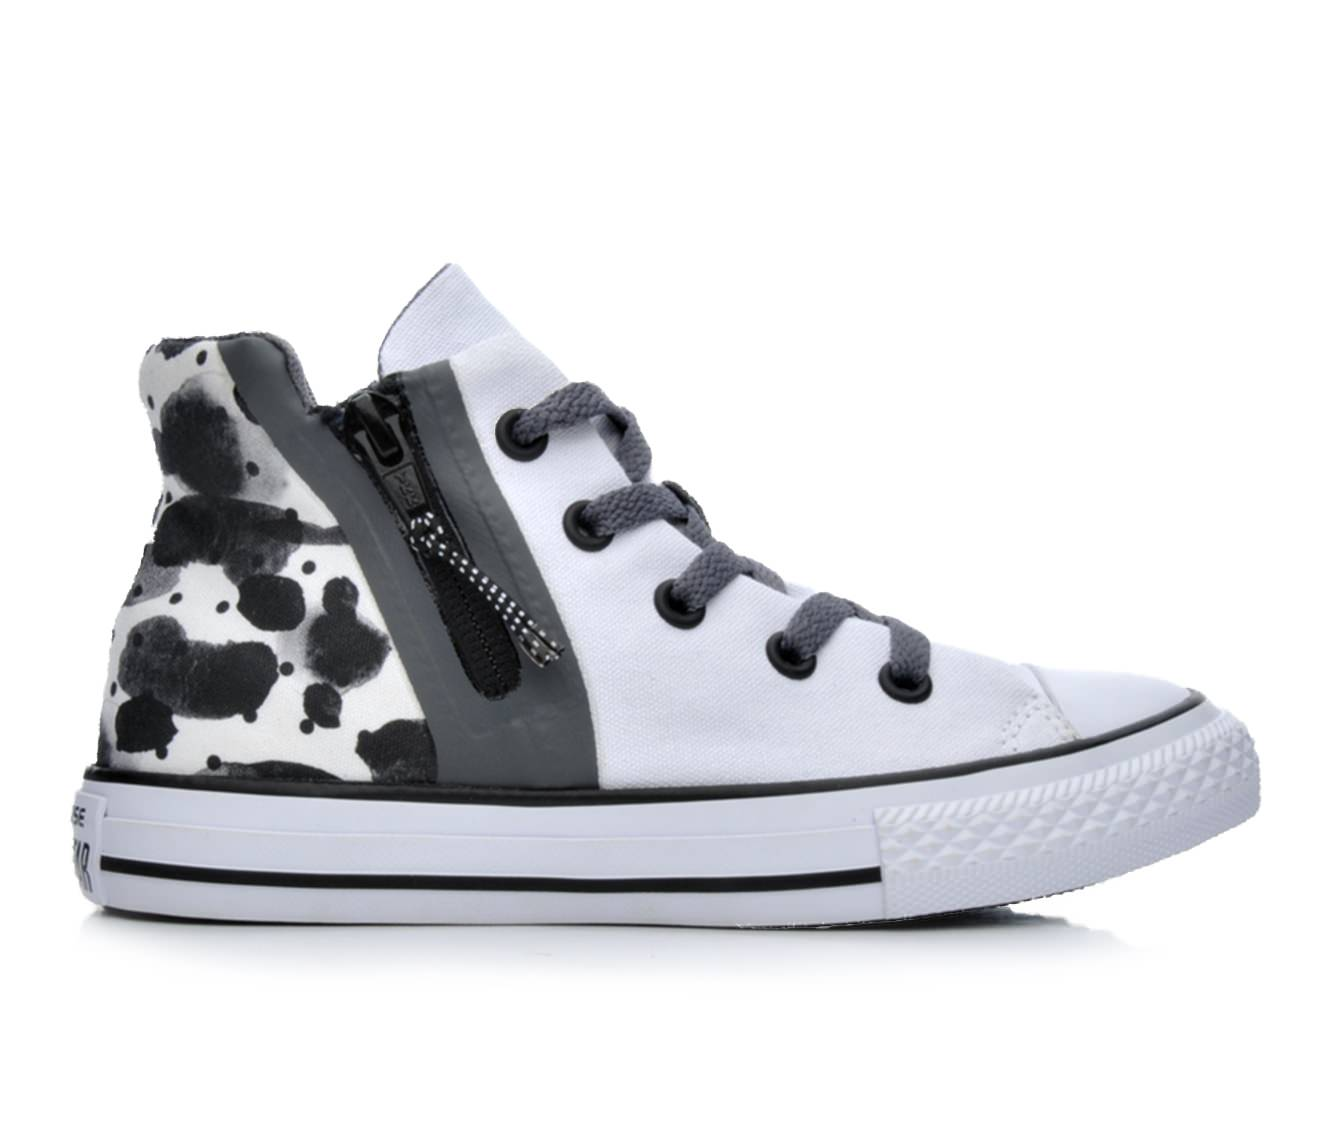 Girls' Converse Chuck Taylor All Star Sport Zip Sneakers (White)